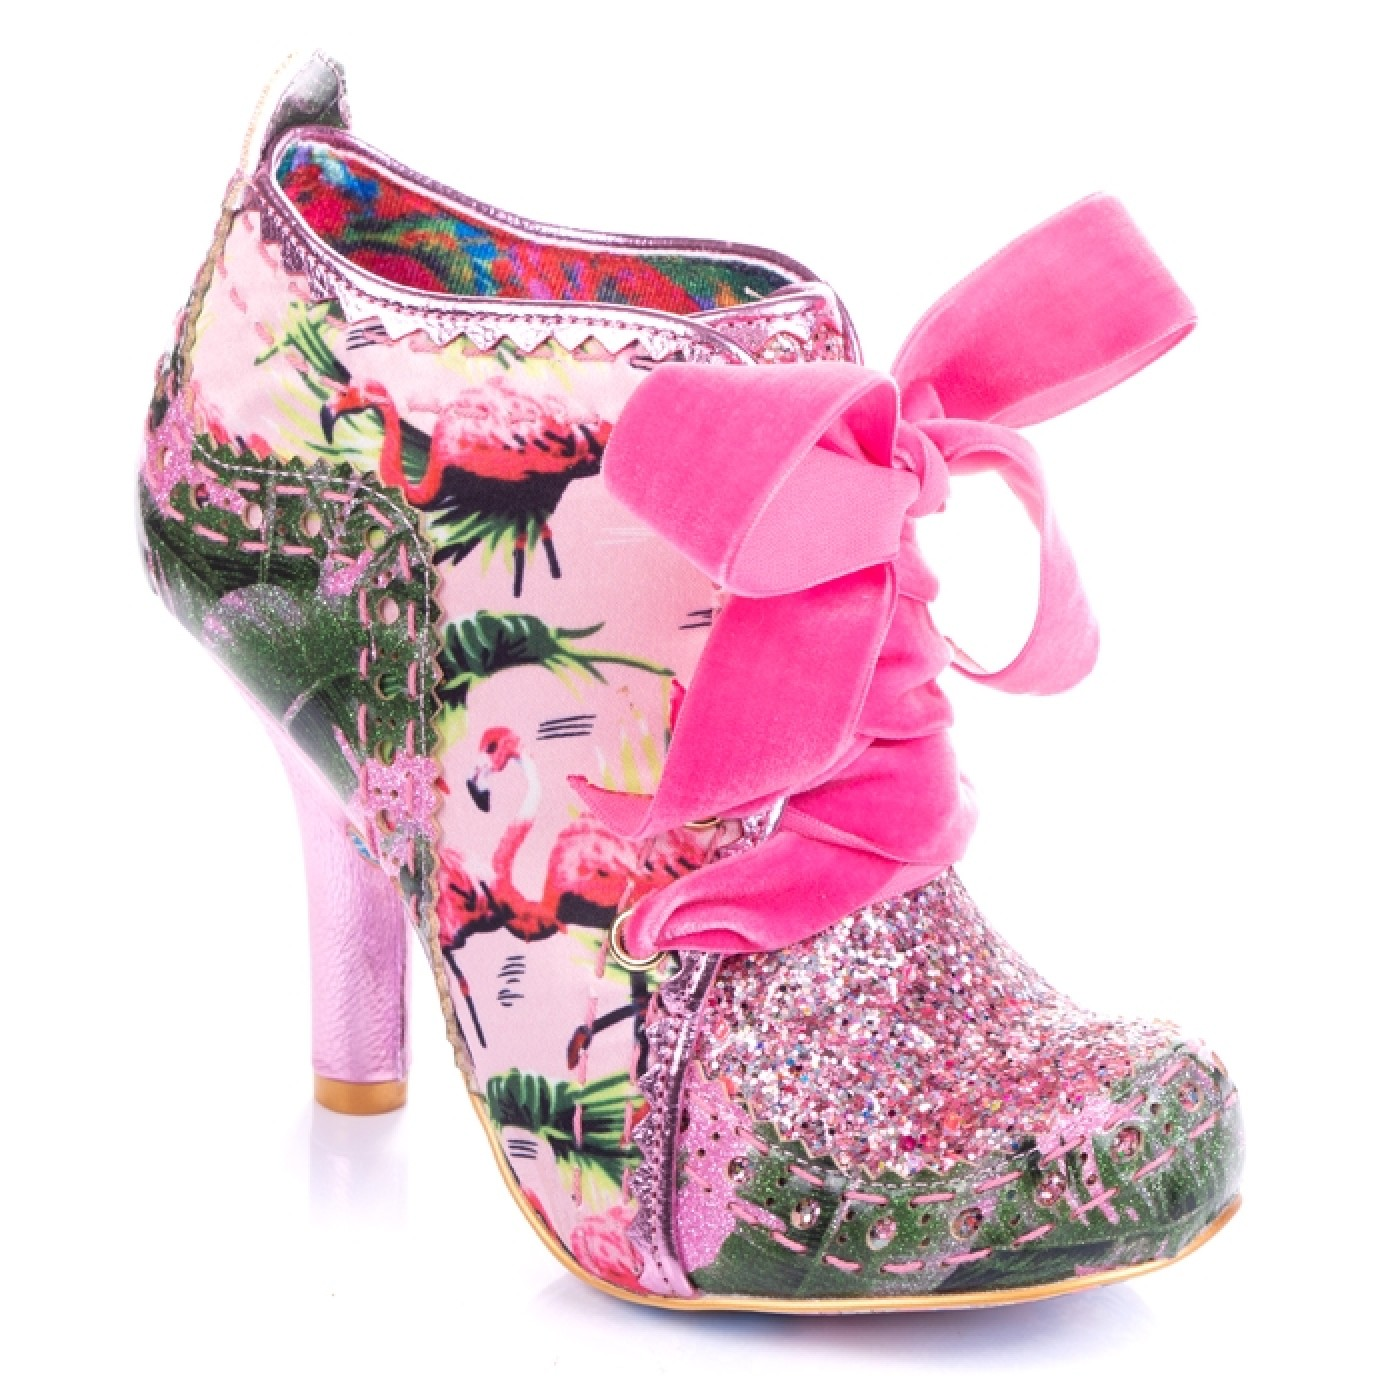 Abigails 3rd Party (pink)